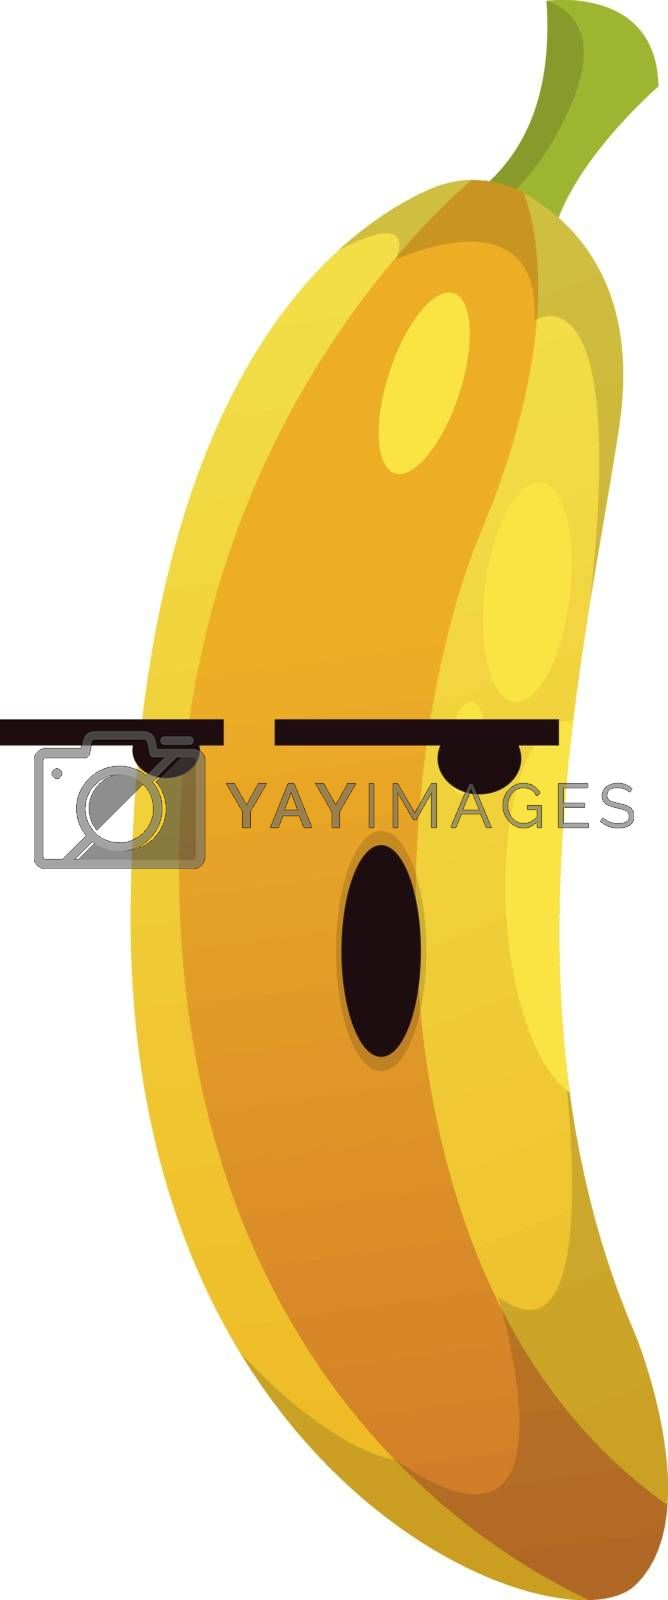 Royalty free image of Banana not in the mood illustration vector on white background by Morphart